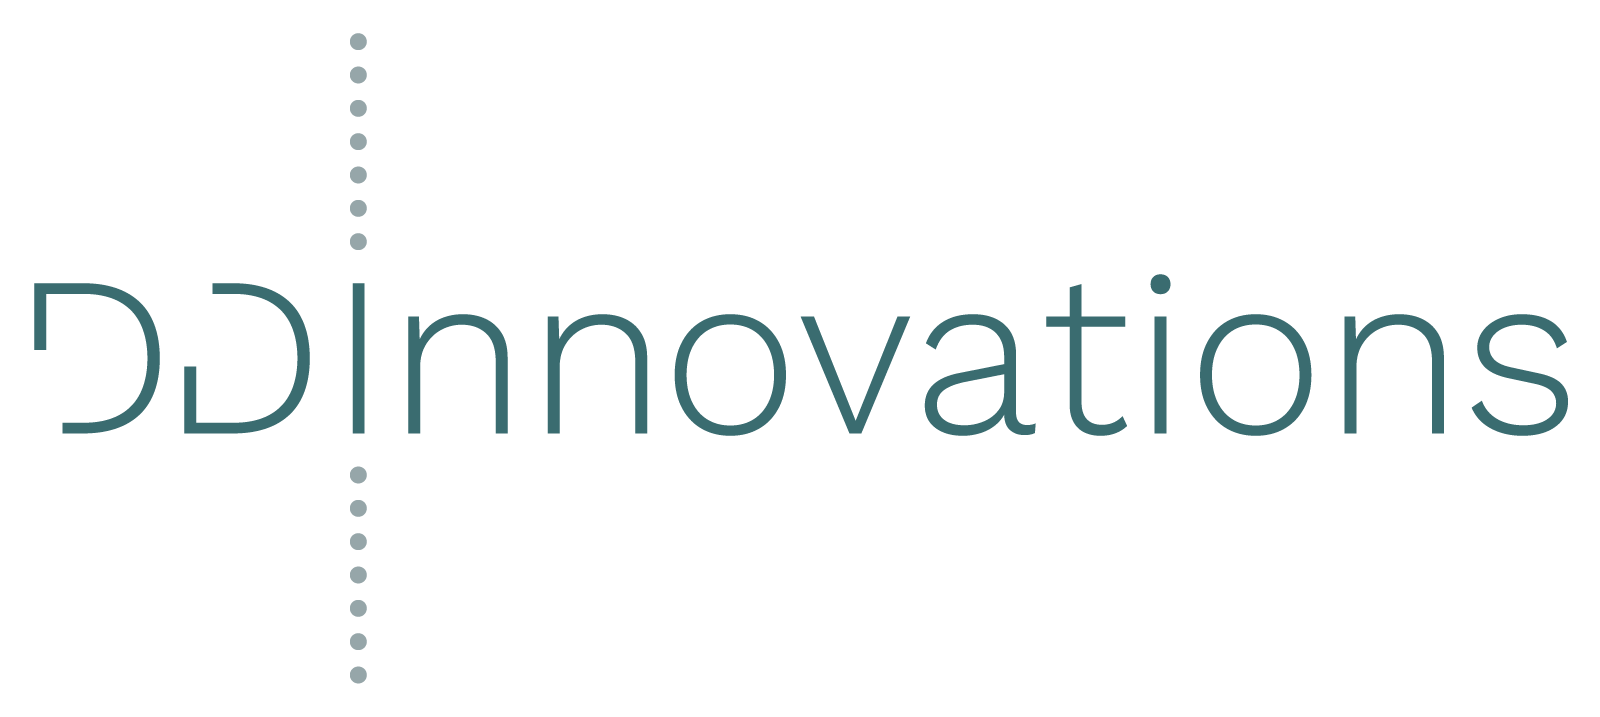 DDInnovations